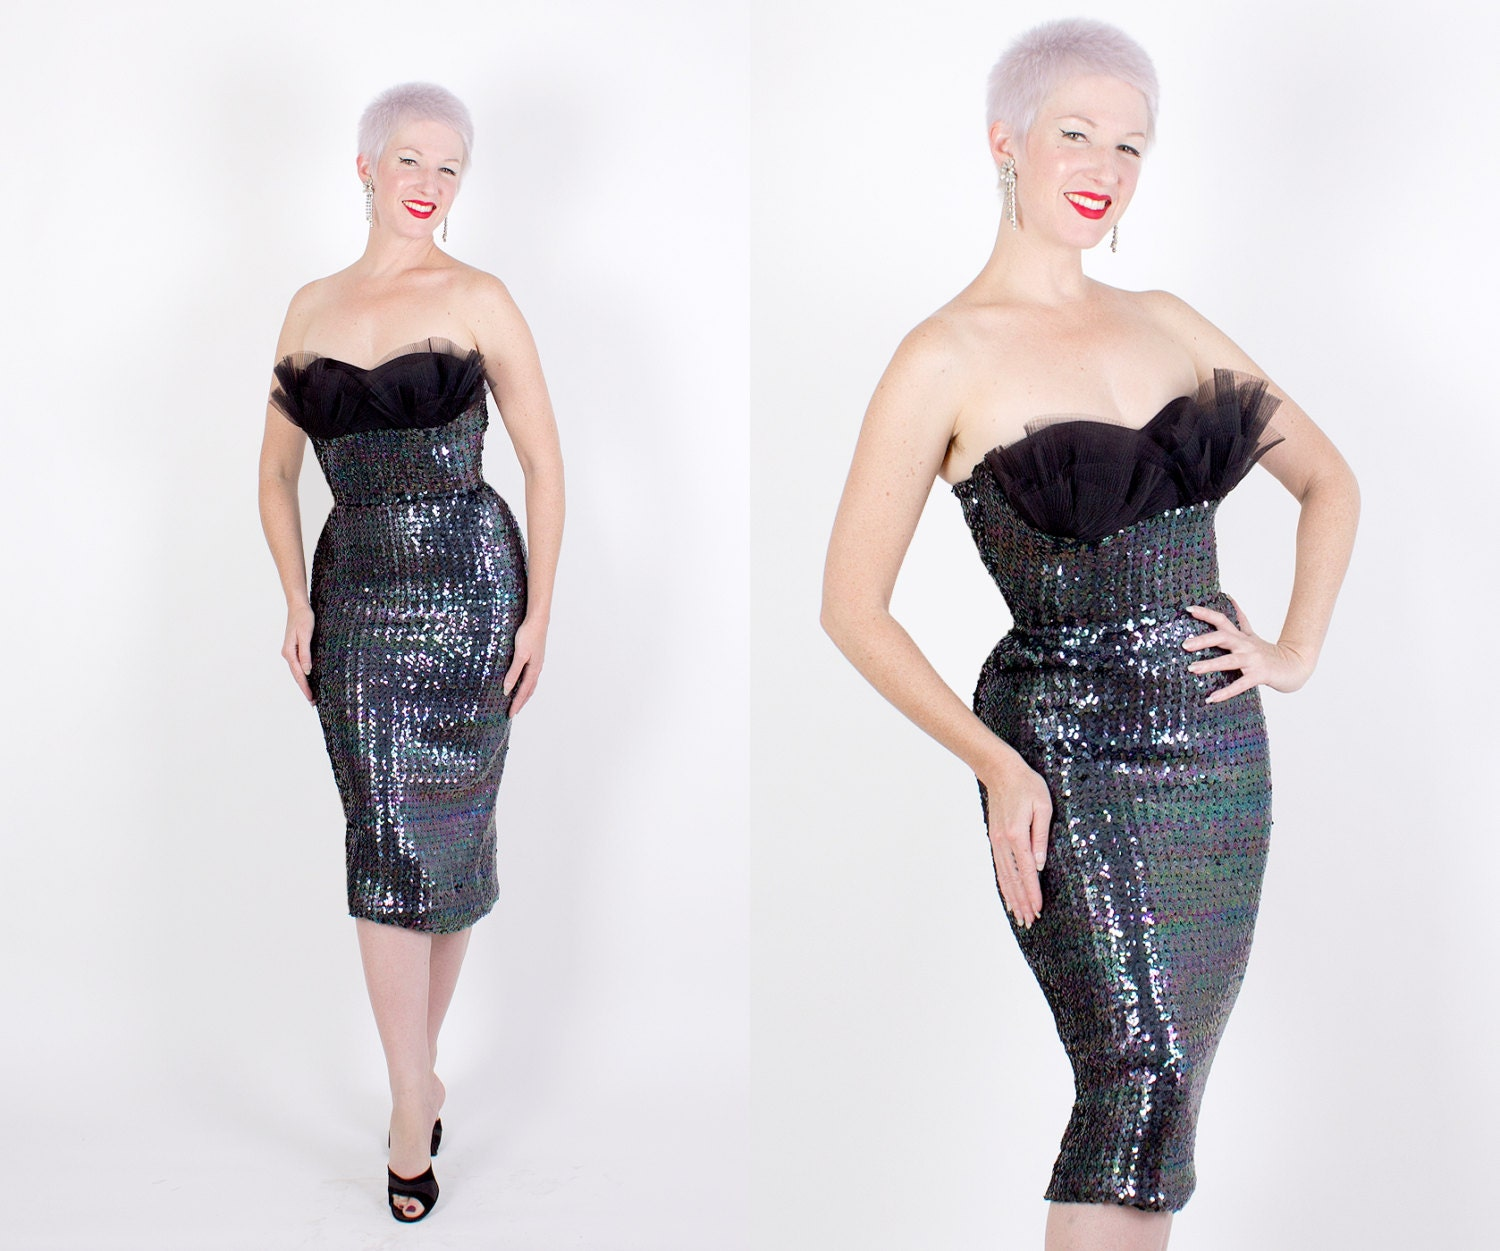 BOMBSHELL 1950's Iridescent Black Sequined Extreme Hourglass Strapless Cocktail Dress w/ 5 Row Ruffle 3D Shelf Bust - VLV - Holiday - S / M